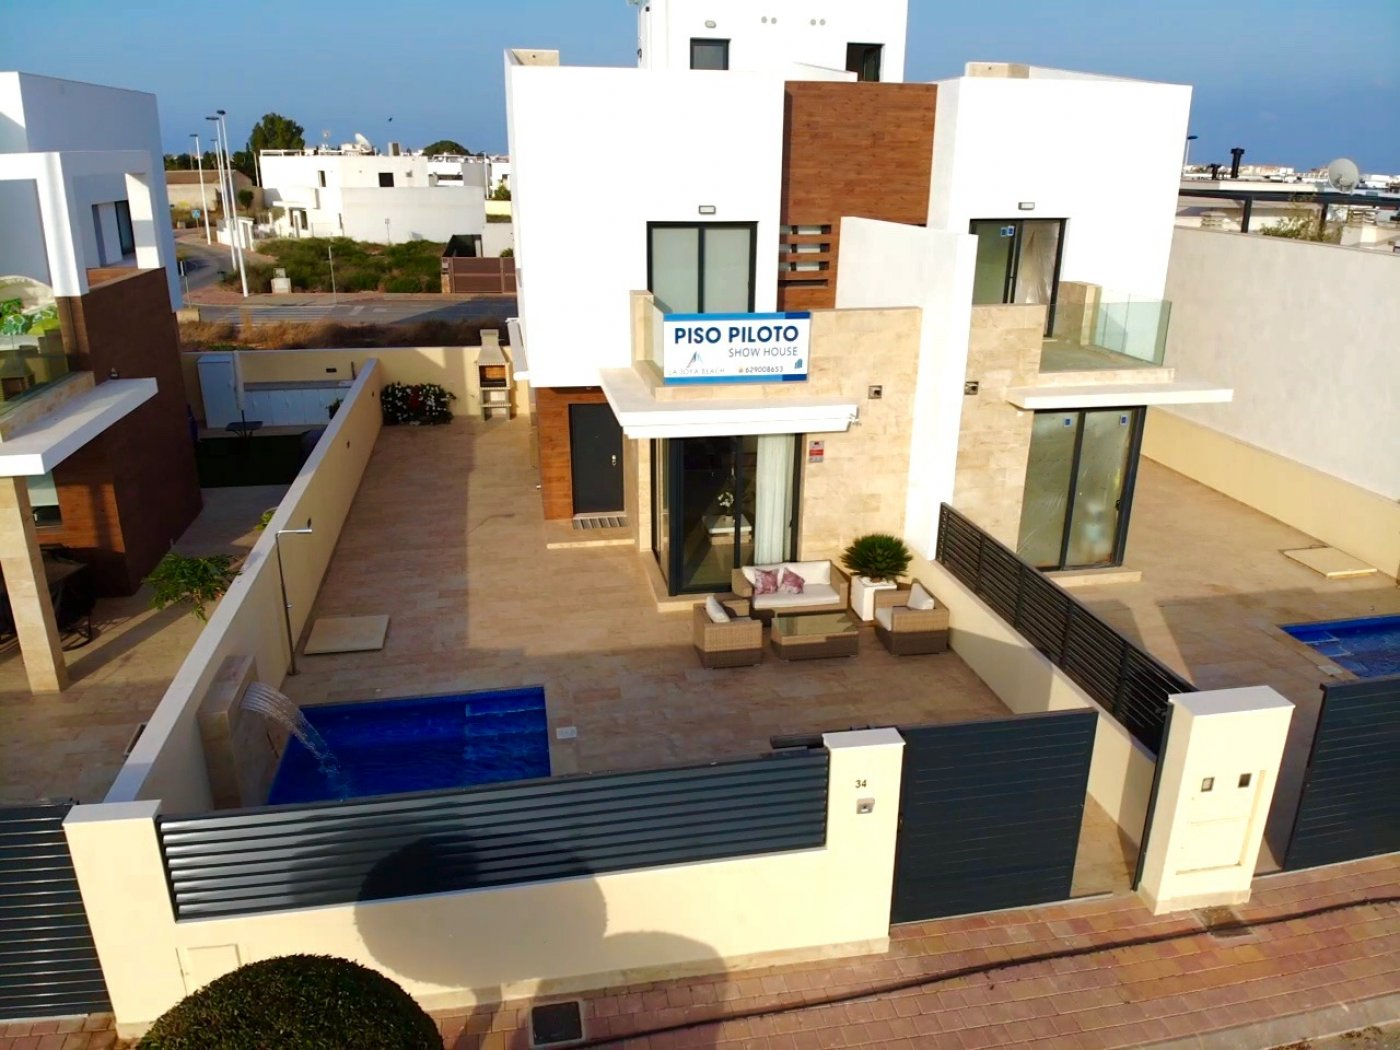 Gallery Image 2 of Premium semi-detached villa with swimming pool at a very competitive price